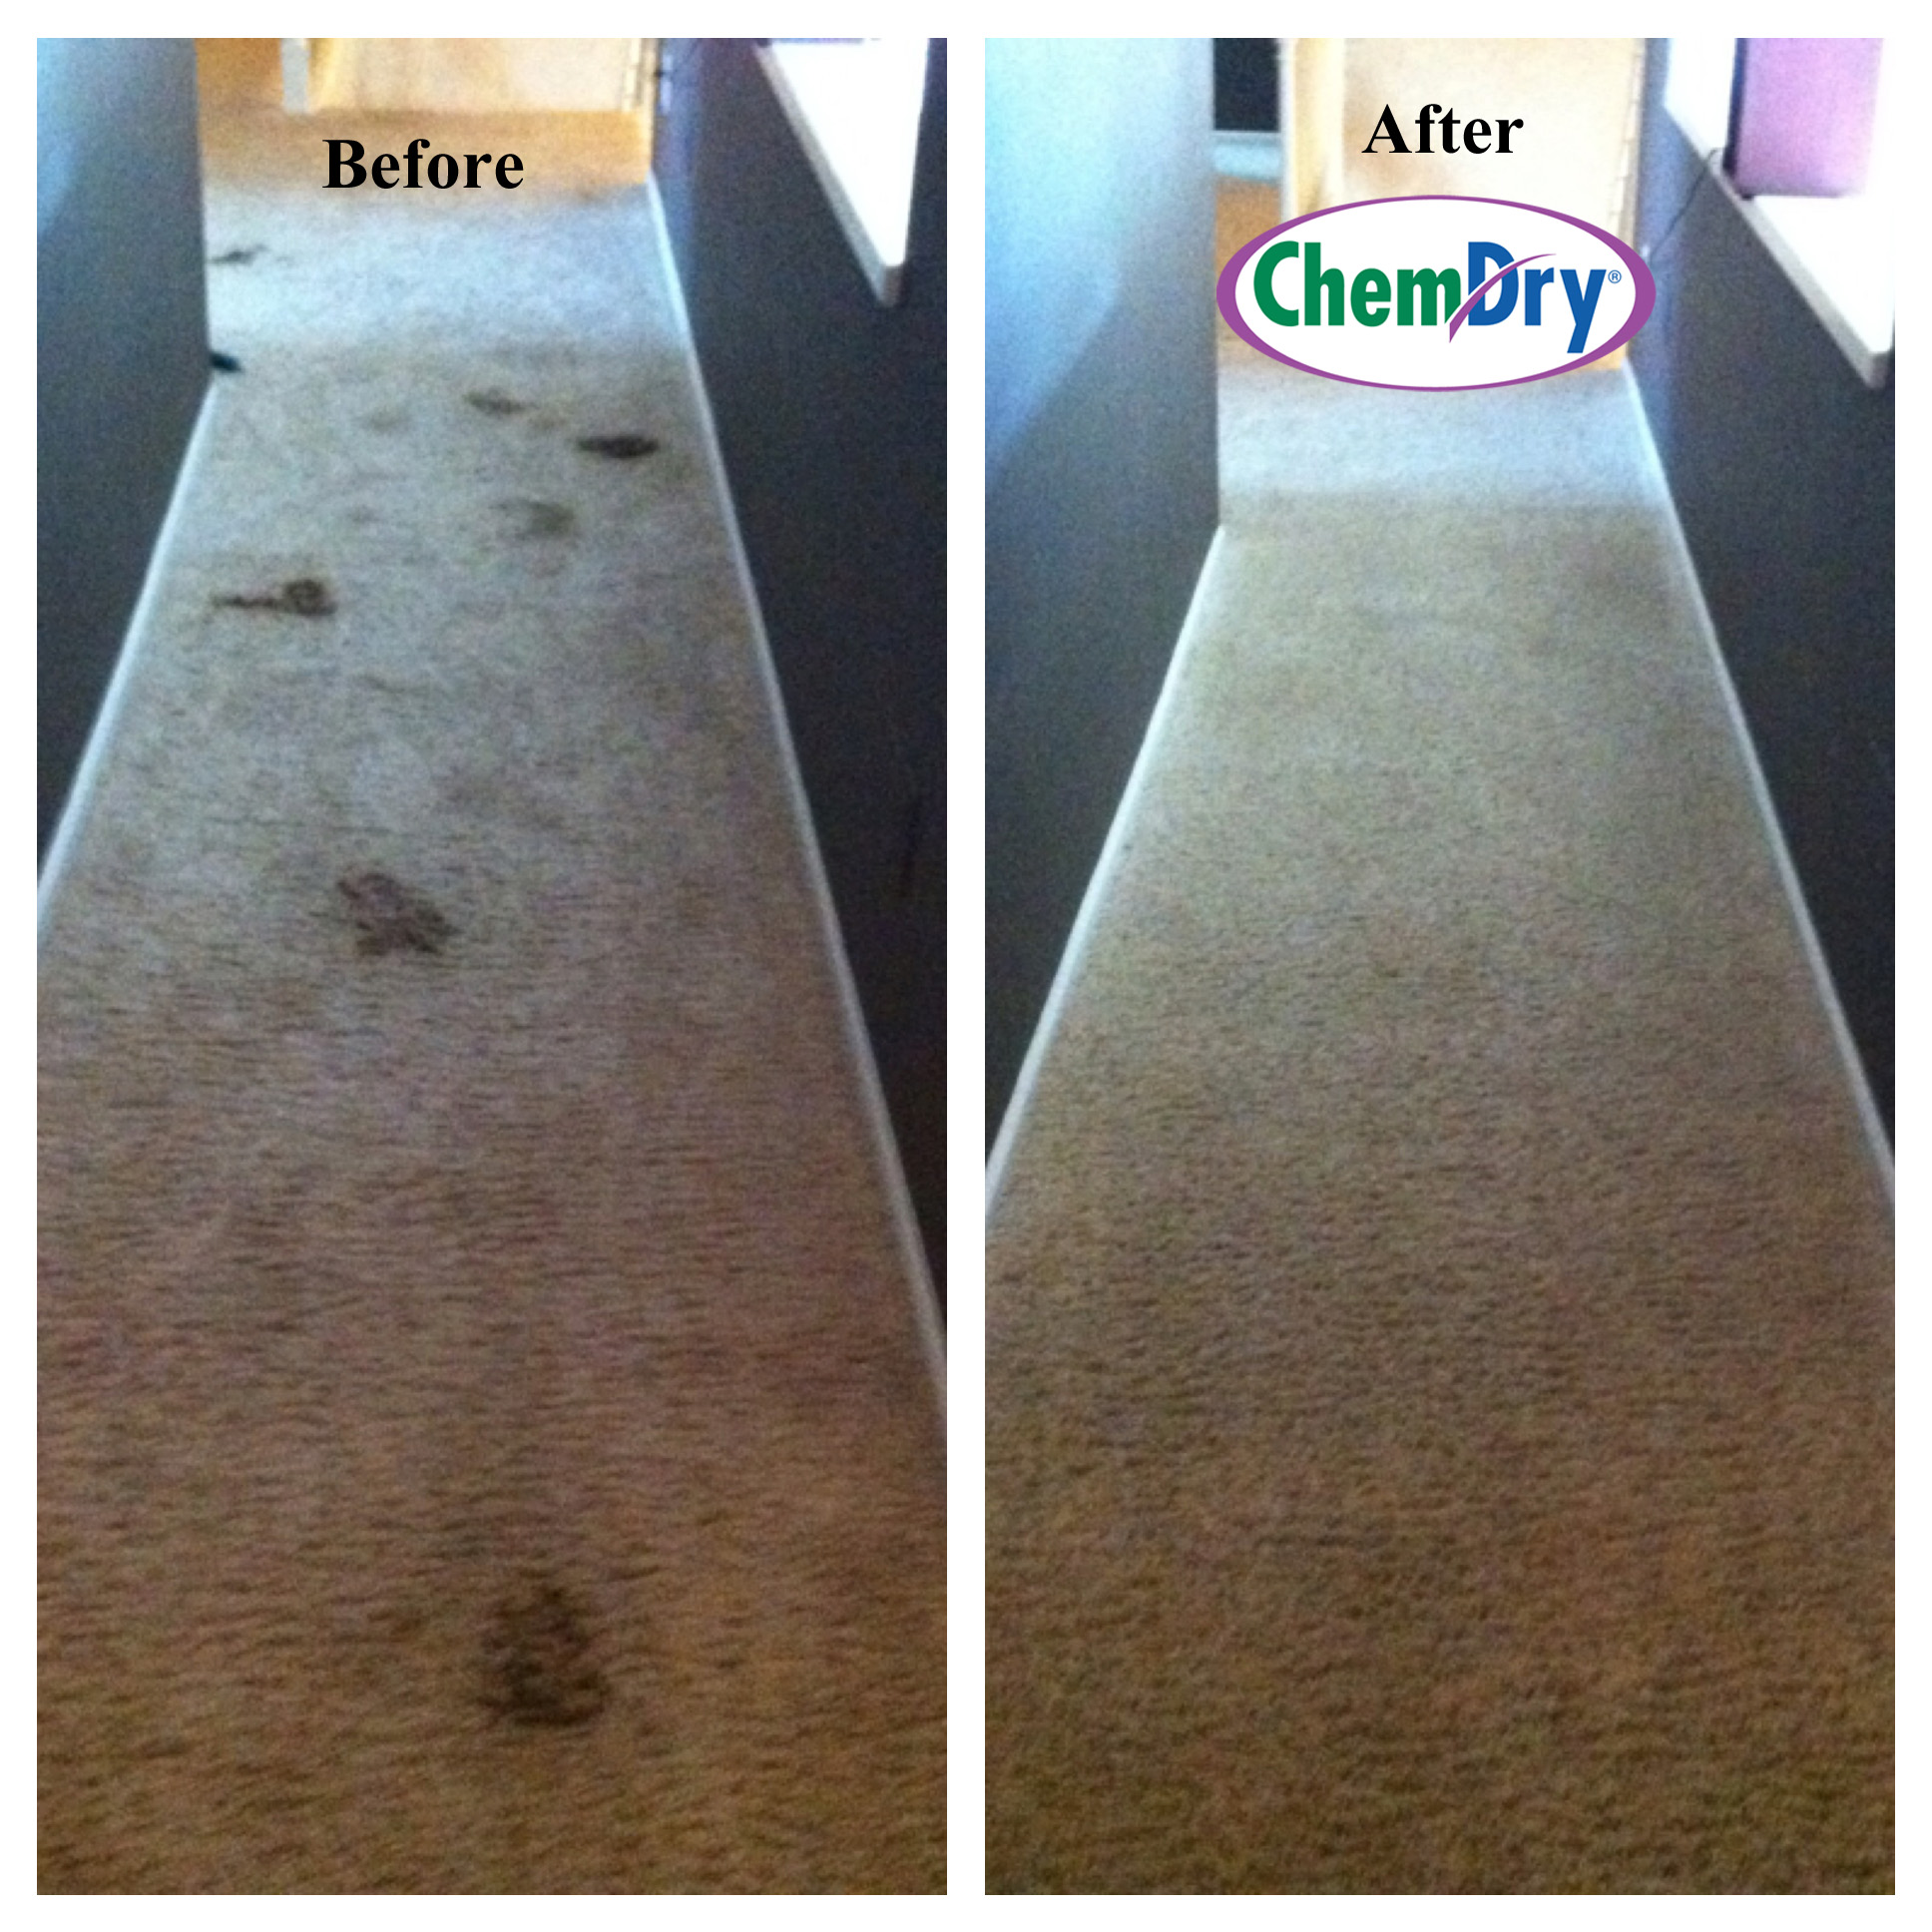 Chem-Dry Removes 98% Allergens & 89% Bacteria